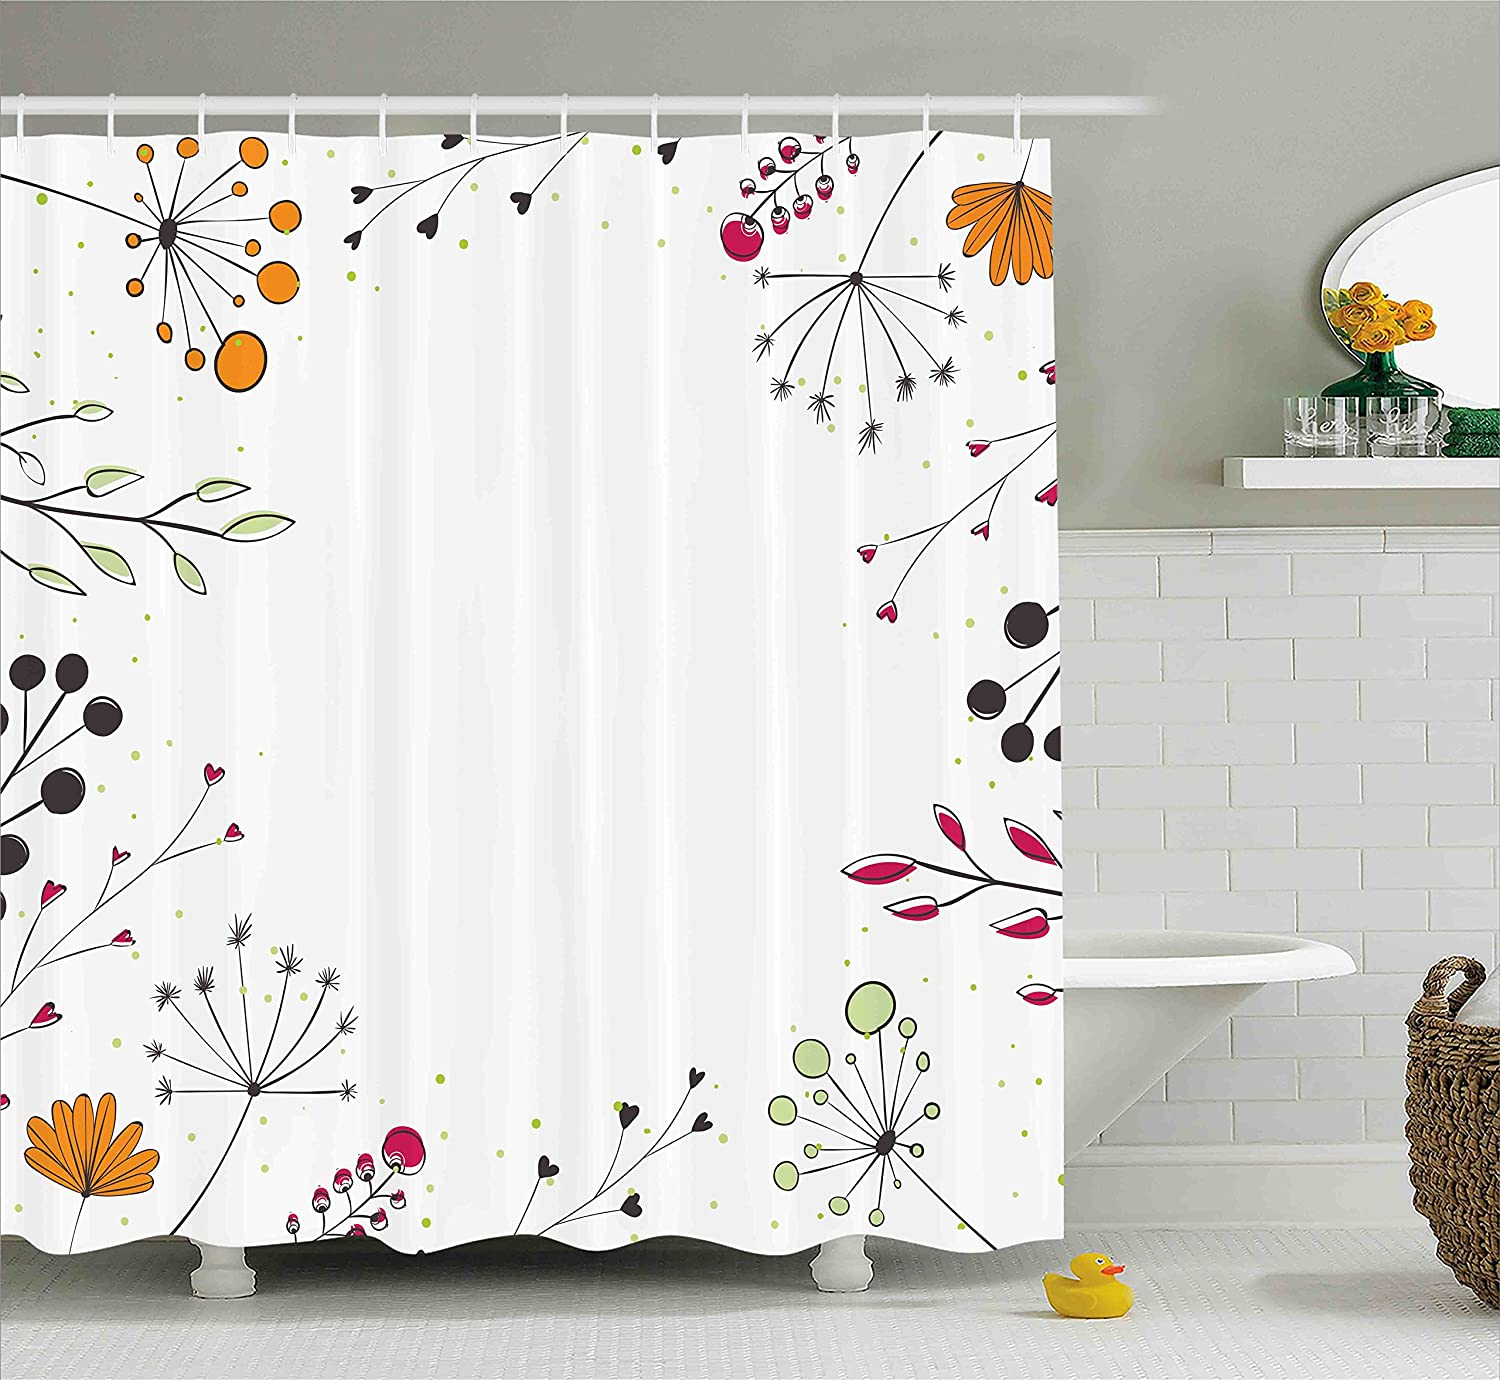 Ambesonne Modern Shower Curtain, Floral Branches with Geometric Flowers Nature Artwork Print, Cloth Fabric Bathroom Decor Set with Hooks, 70